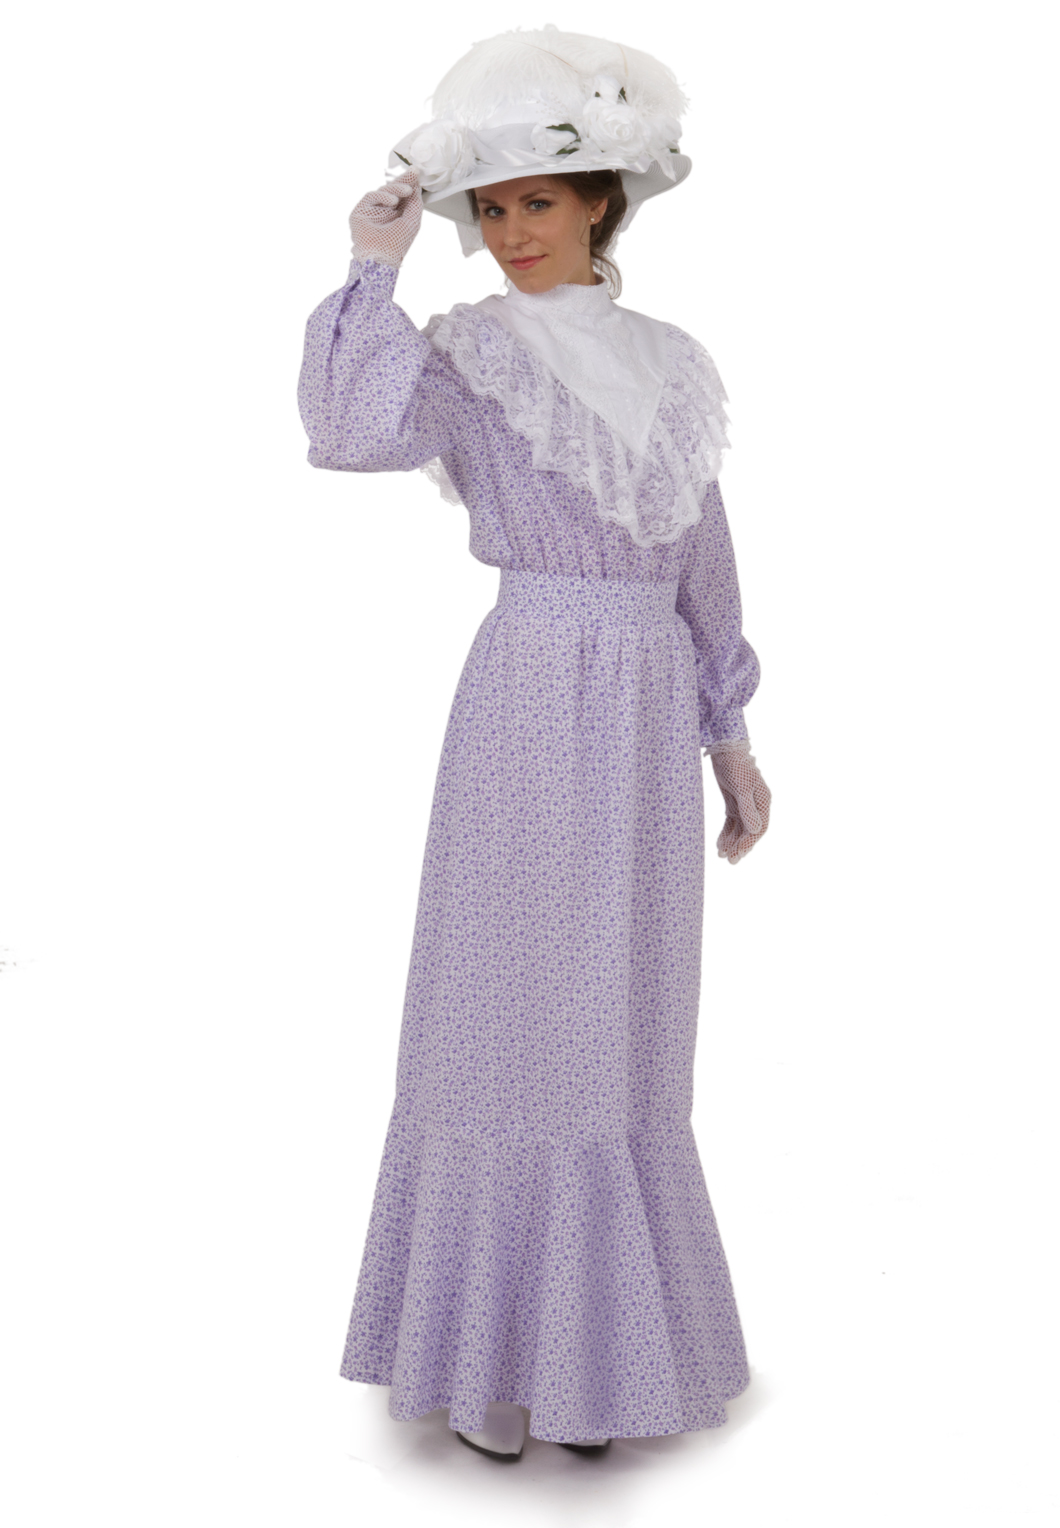 Elsie Edwardian Dress, Collar, Belt